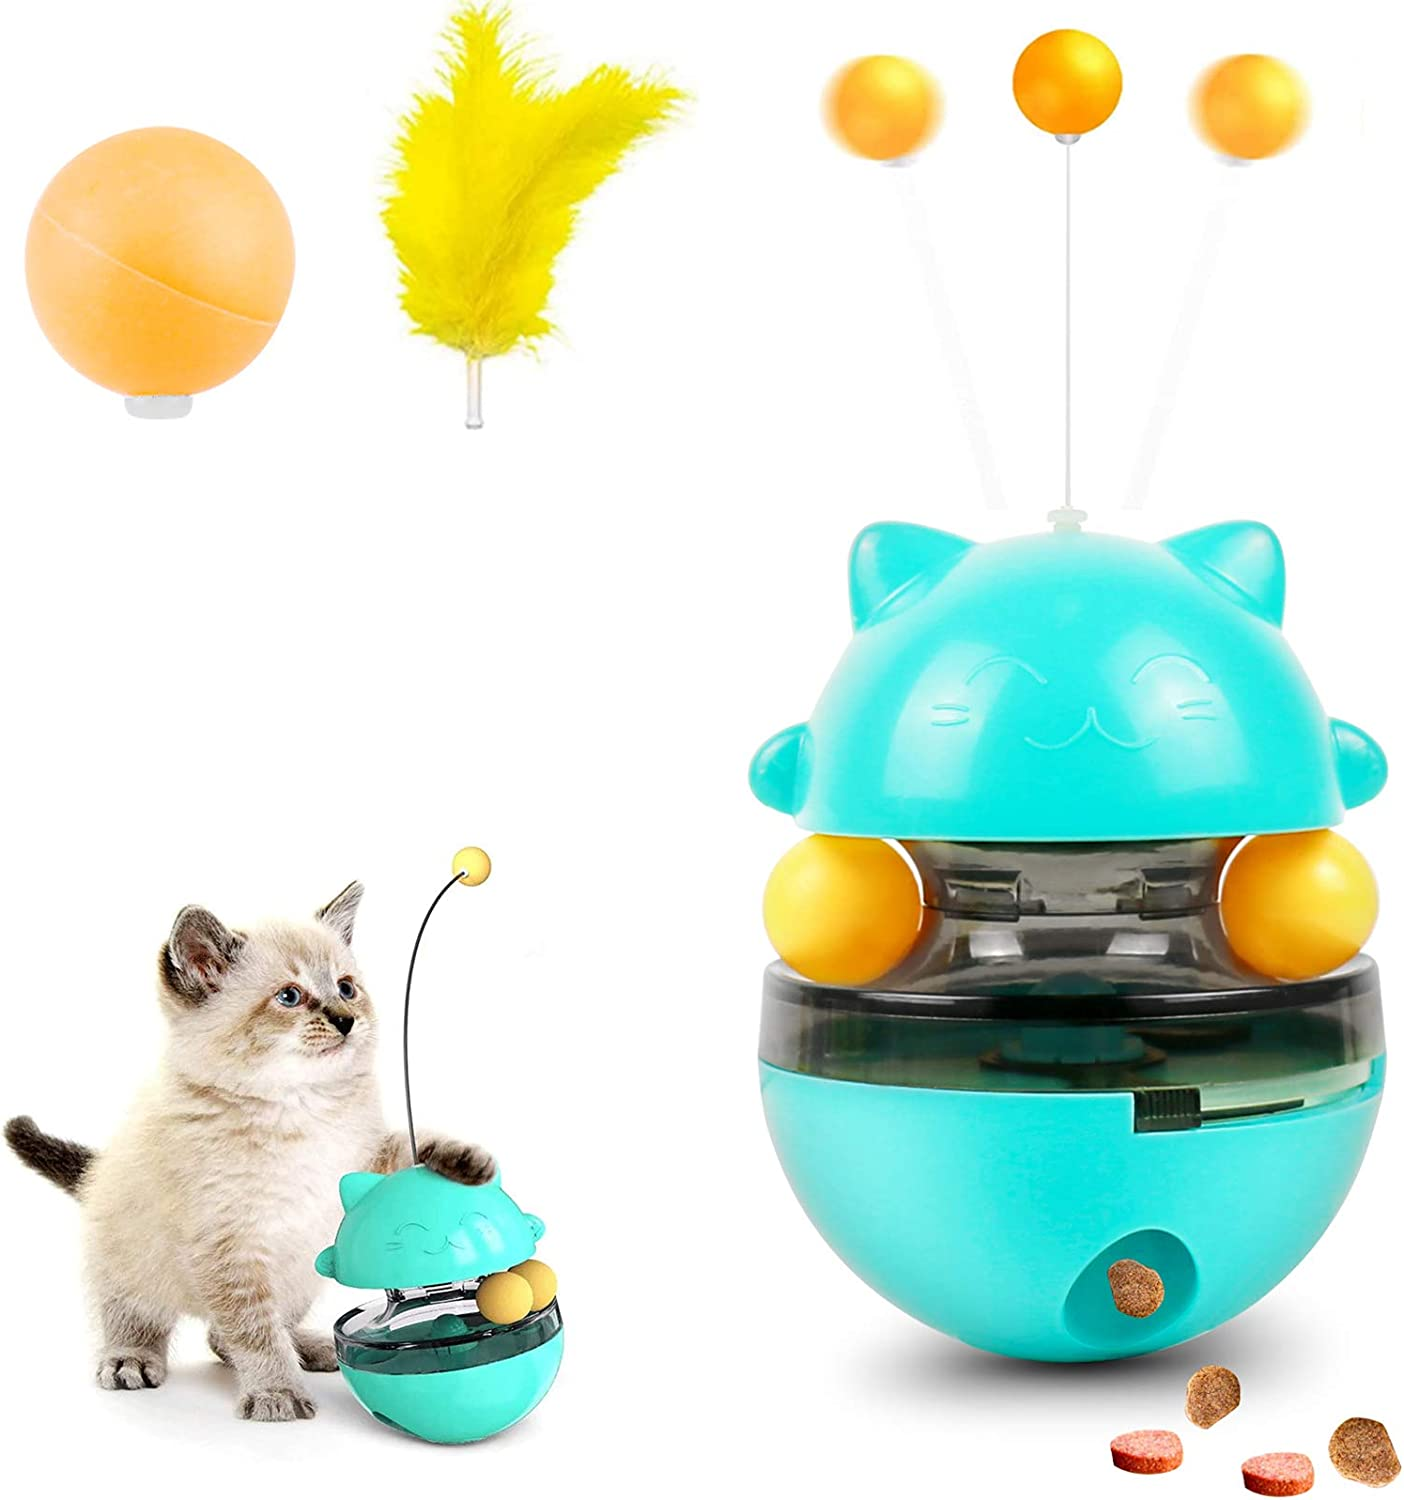 Cat Toys, Cat Tumbler Toy Cat Food Dispenser Cat Slow Feeder, Anxiety Relie Interactive Training Funny Cat Stick Toy for Cats Kitten Exercise Interactive Game, Replaceable Rolling Ball and Feathers